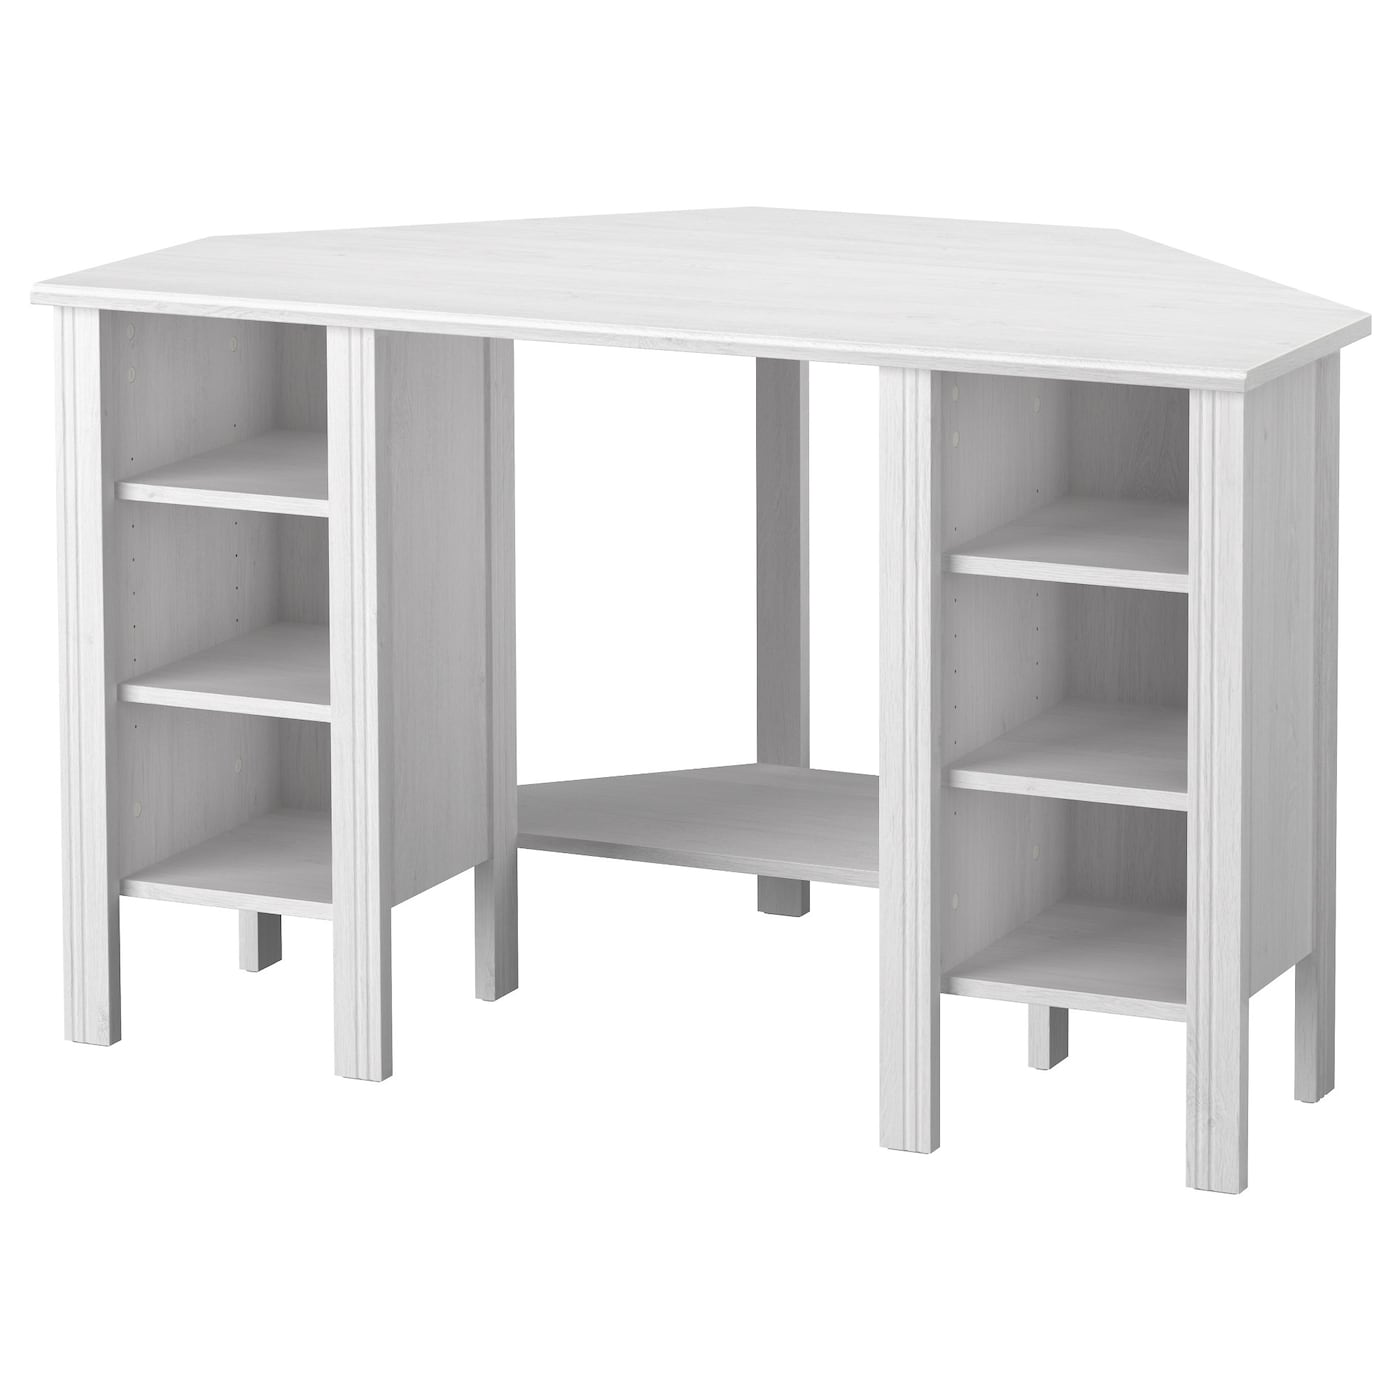 brusali corner desk white 120 x 73 cm ikea. Black Bedroom Furniture Sets. Home Design Ideas